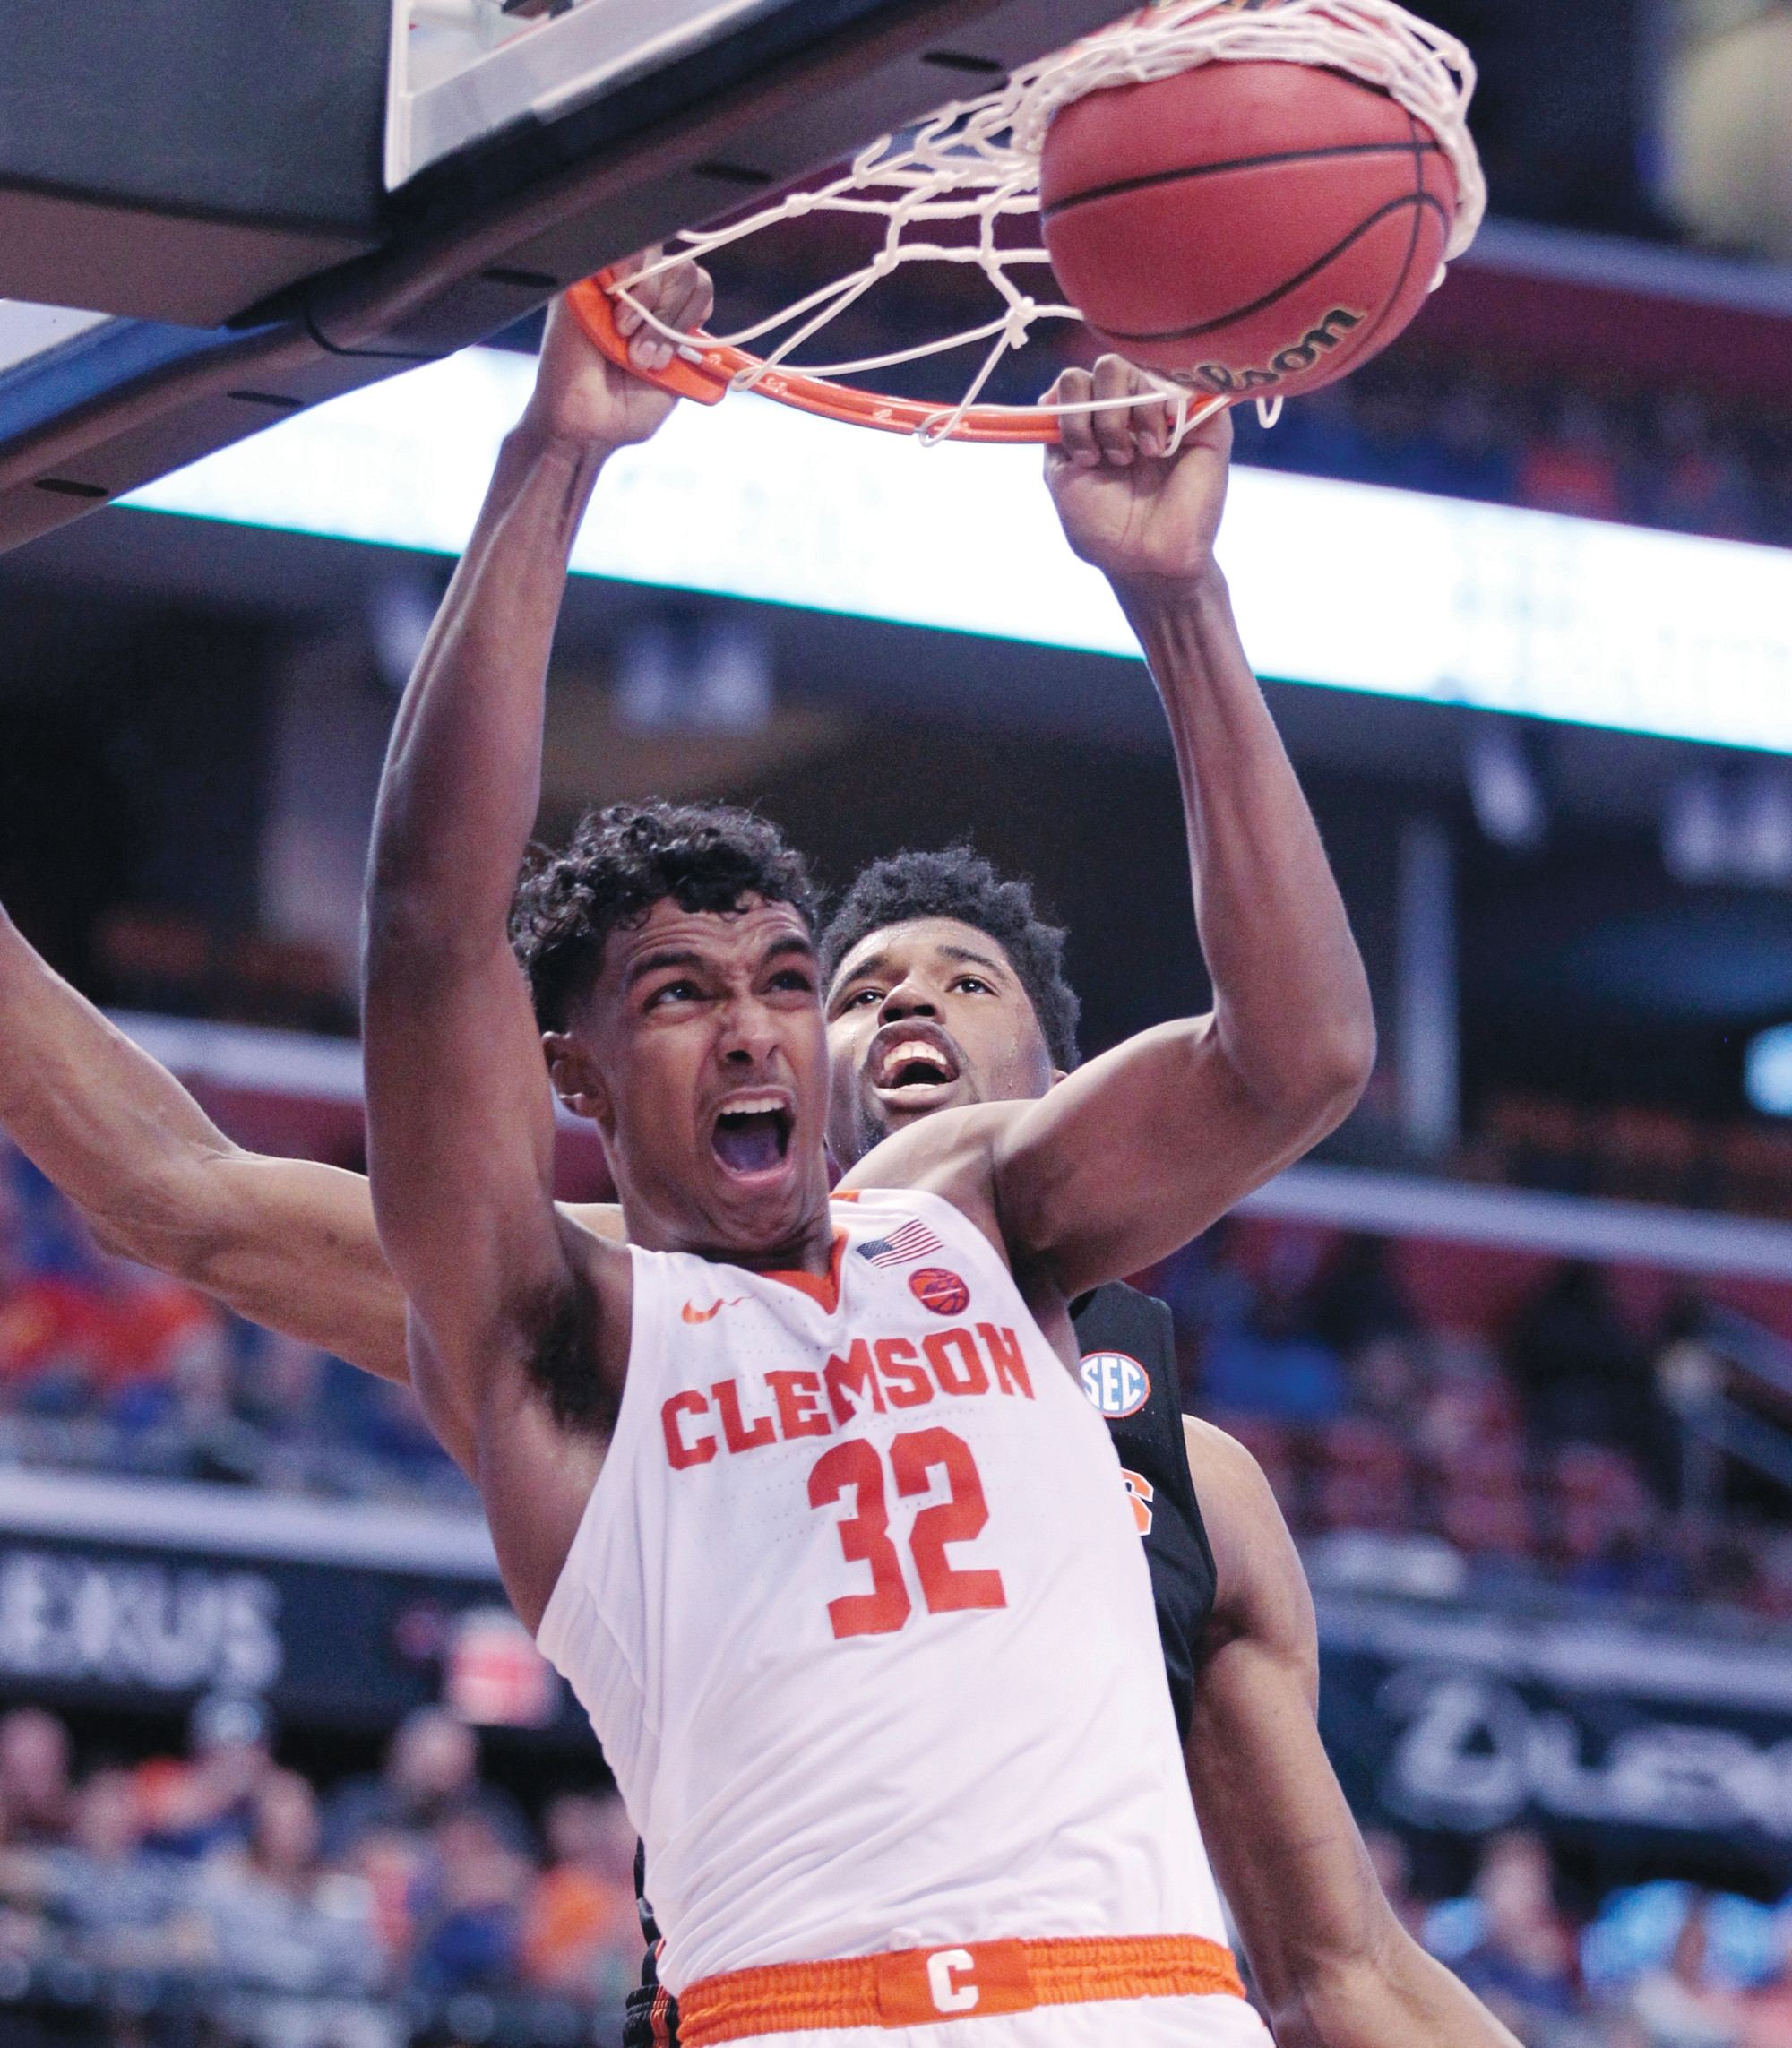 Clemson's Donte Grantham (32) slams the ball during the first half of the Tigers' 71-69 victory over the Gators in the Orange Bowl Classic on Saturday in Sunrise, Florida.